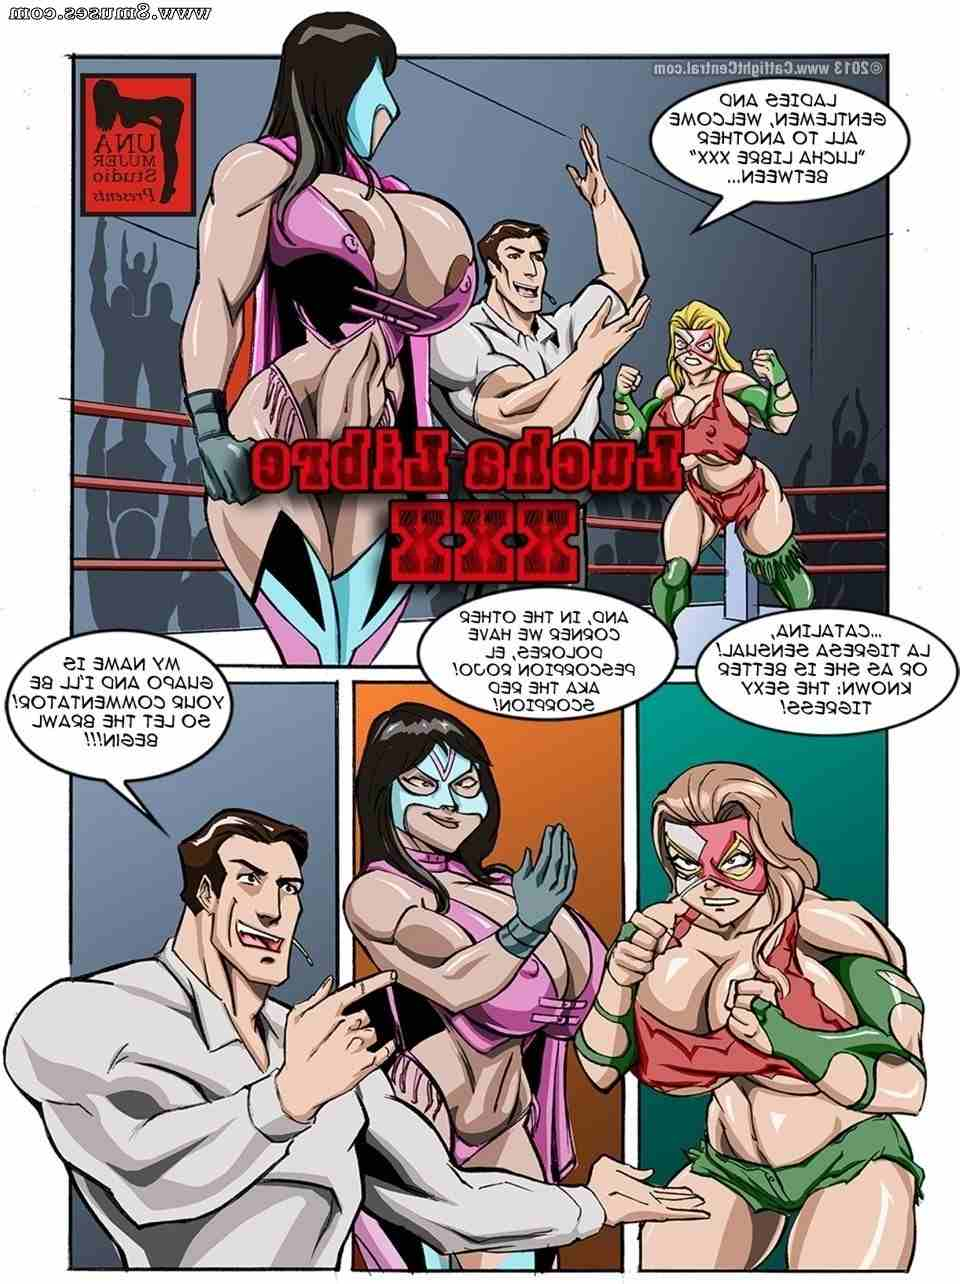 Central-Comics/Catfight-Central/Lucha-Libre-XXX Lucha_Libre_XXX__8muses_-_Sex_and_Porn_Comics.jpg